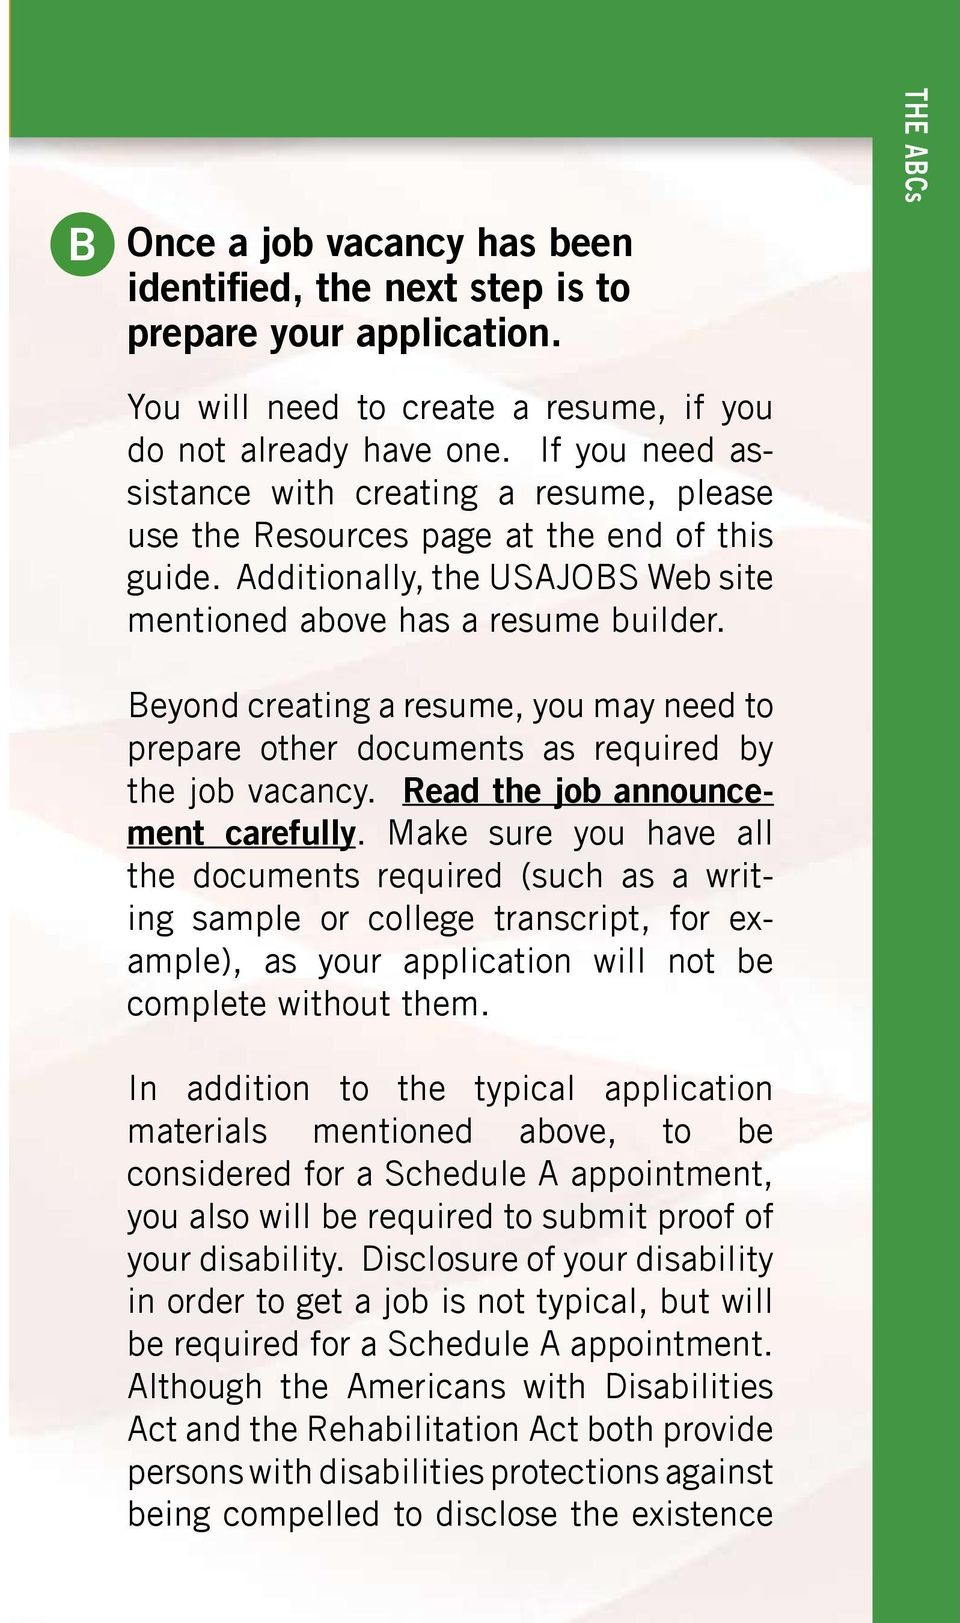 Beyond creating a resume, you may need to prepare other documents as required by the job vacancy. Read the job announcement carefully.